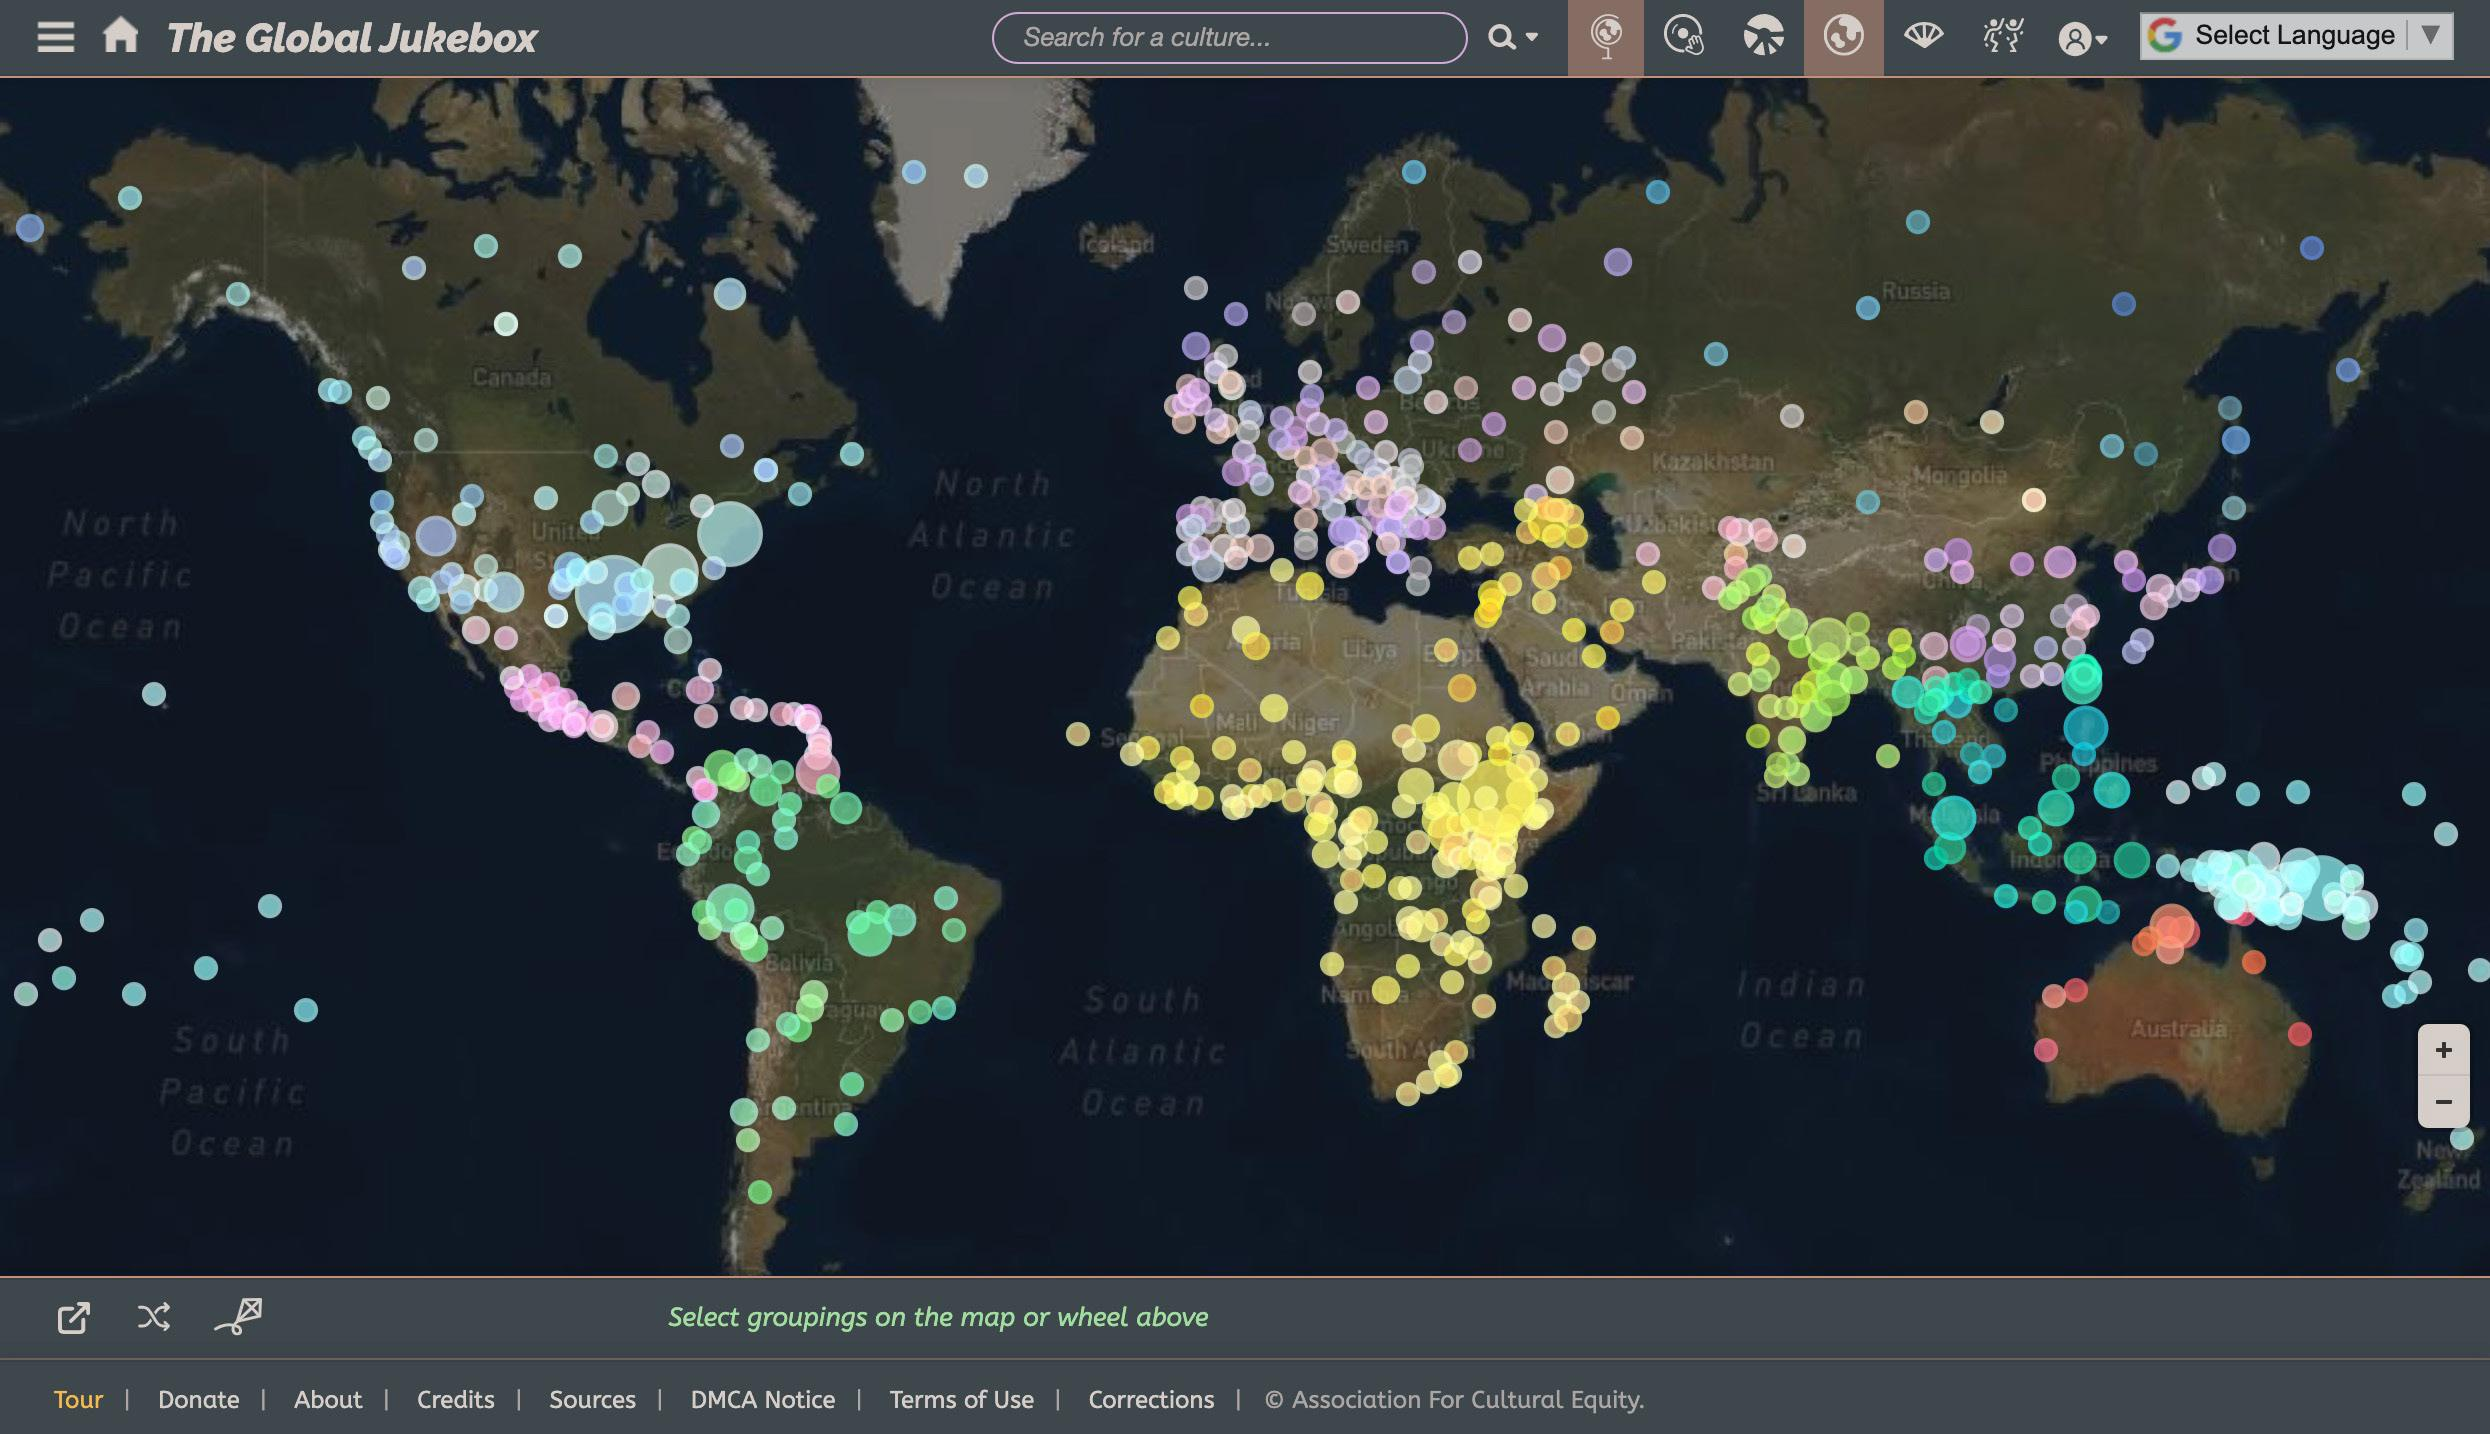 FIGURE 3. Screenshot of the interactive map in The Global Jukebox website